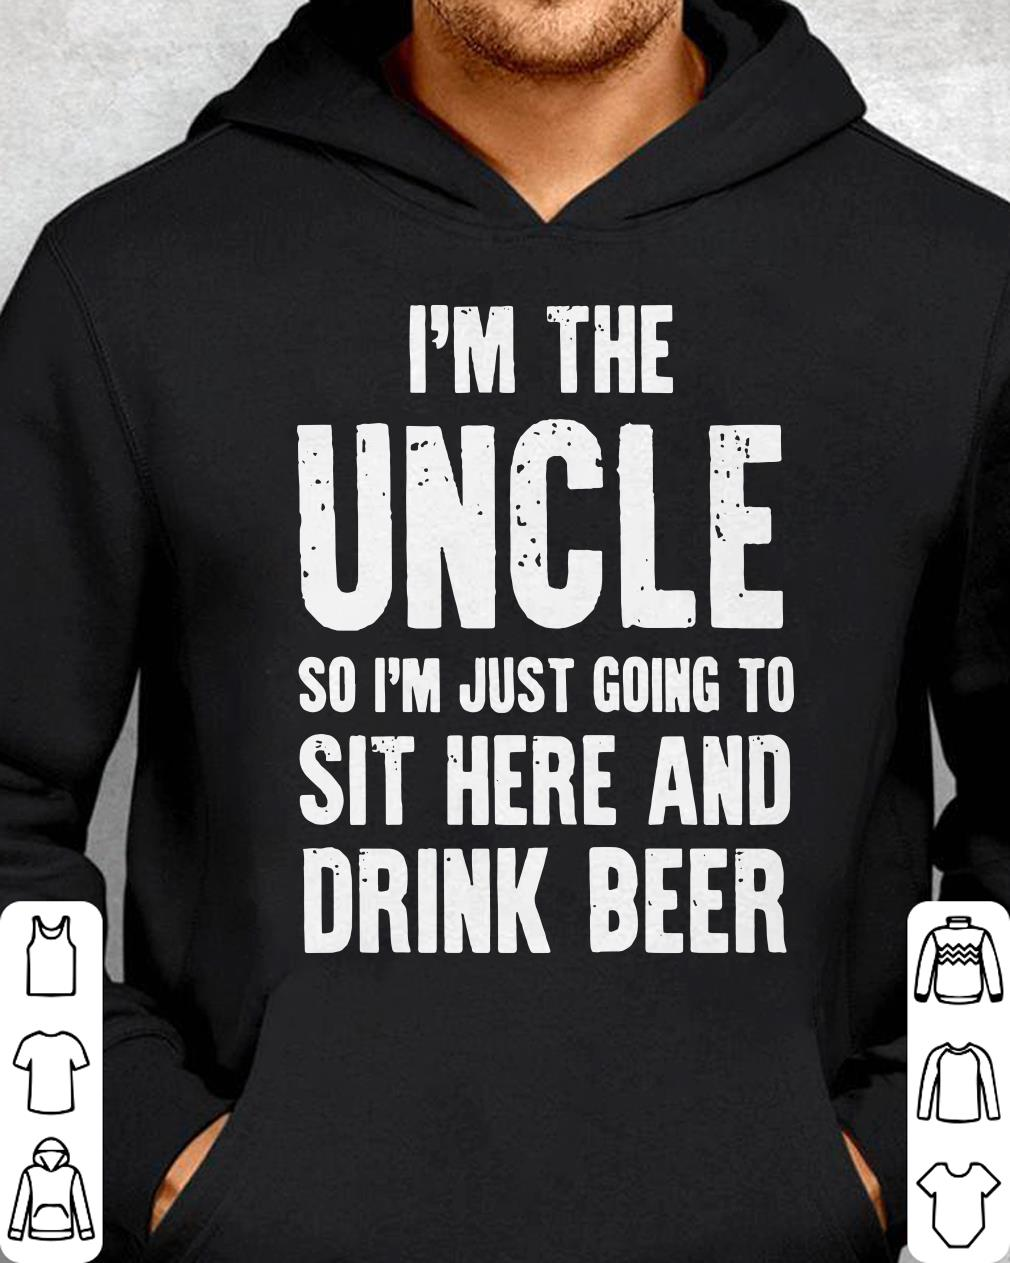 https://teeforme.net/tee/2018/11/Hot-I-m-the-uncle-so-I-m-just-going-to-sit-here-and-drink-beer-shirt_4.jpg